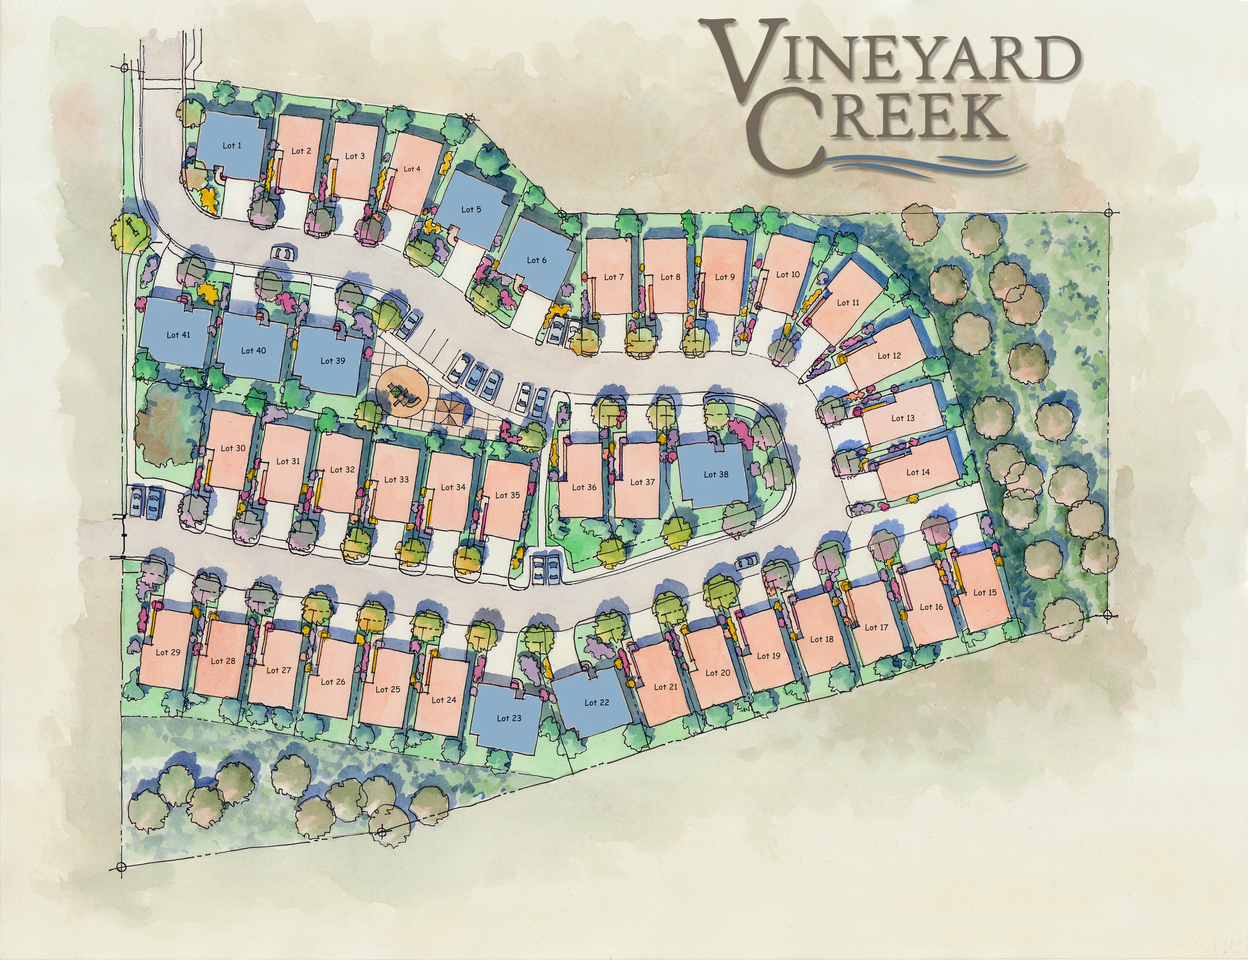 - Vineyard Creek is a promising new home development located on the western side of Hwy 101 in Templeton, California. The community consists of 41 beautiful, two story, single family homes bordered by majestic oak trees and rolling green hills. Residents of Vineyard Creek also enjoy a close proximity to Hwy 101, putting them minutes away from all that the Central Coast has to offer.The homes at Vineyard Creek will range from 1,408 to 1,559 sq. ft. We believe that with unbeatable amenities, excellent location, and affordable prices, the homes at Vineyard Creek will sell fast.